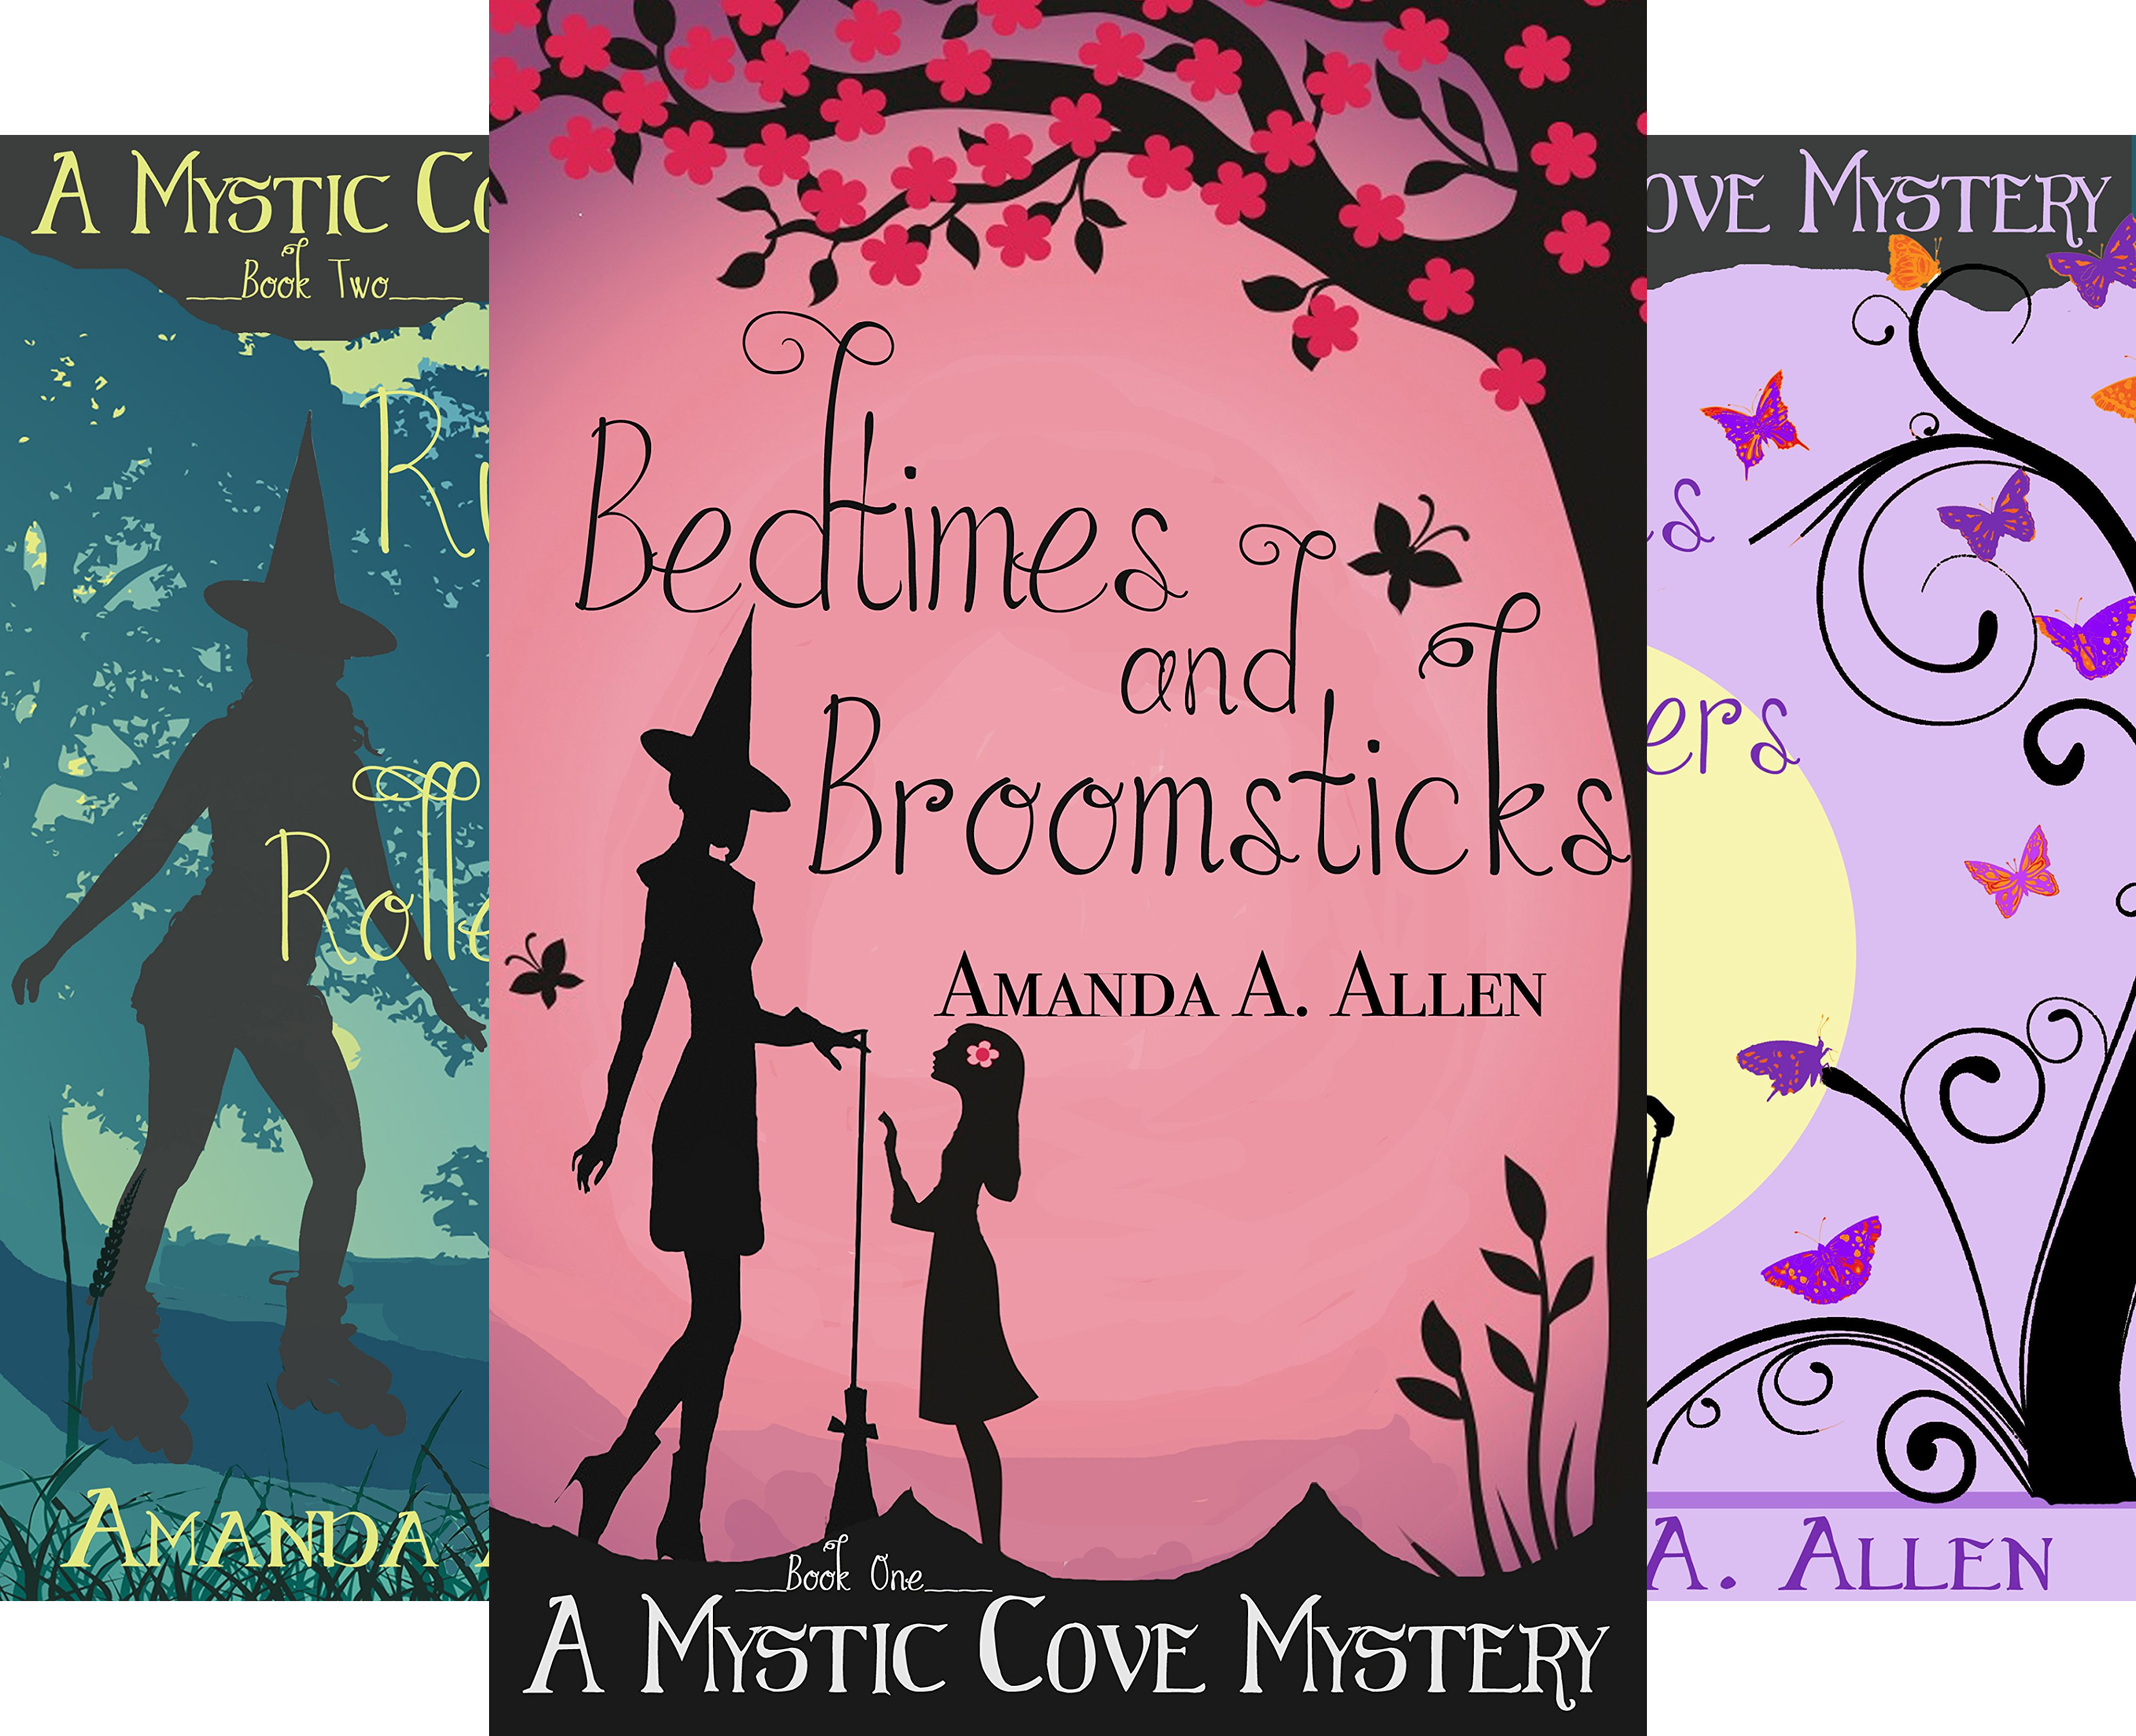 Mystic Cove Mysteries (4 Book Series)